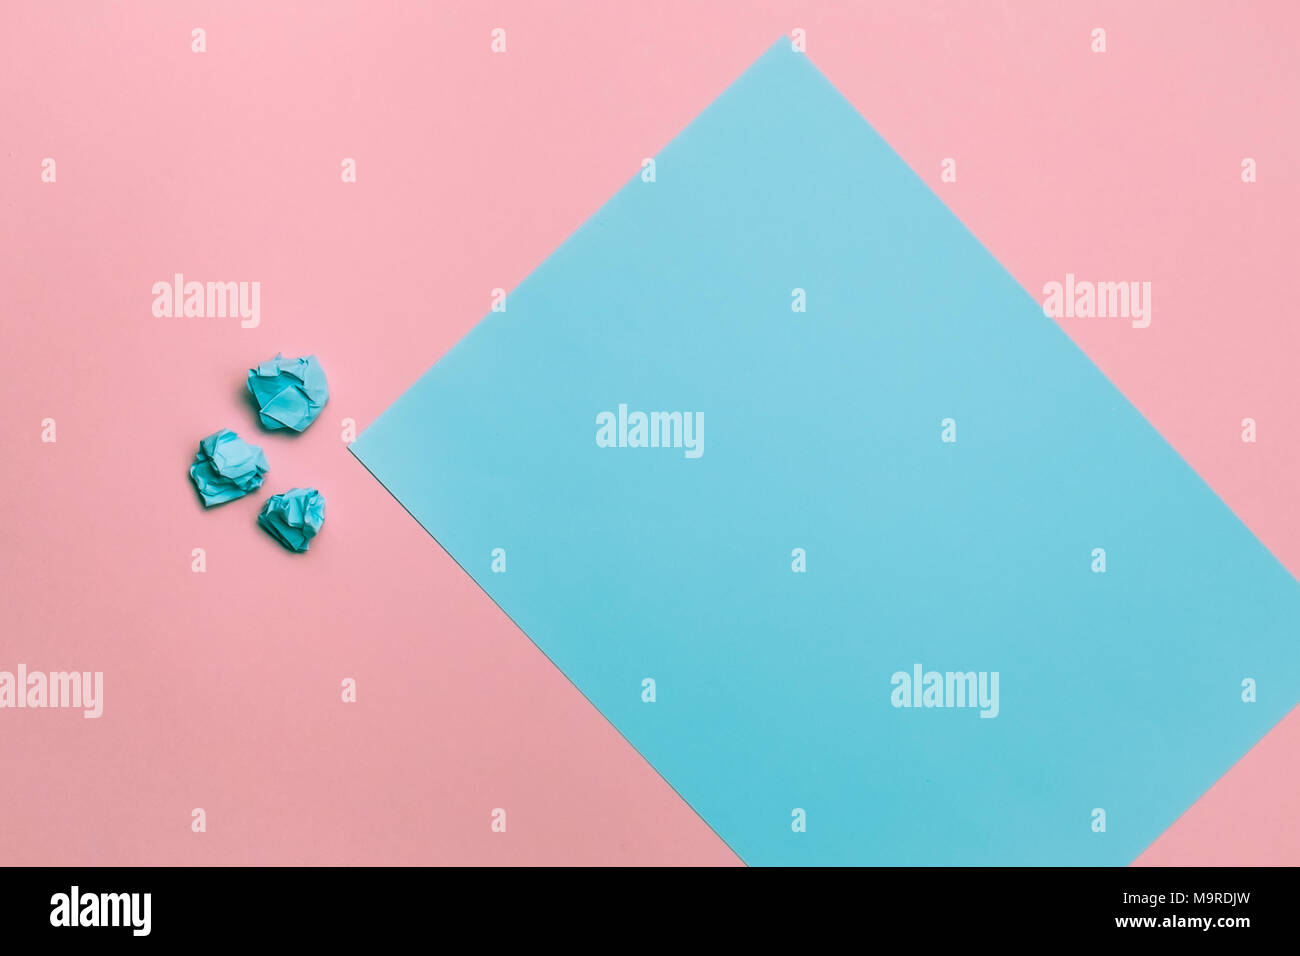 Two tone pink and blue contrast colored paper background with crumpled balls. Empty blank for text and design. - Stock Image